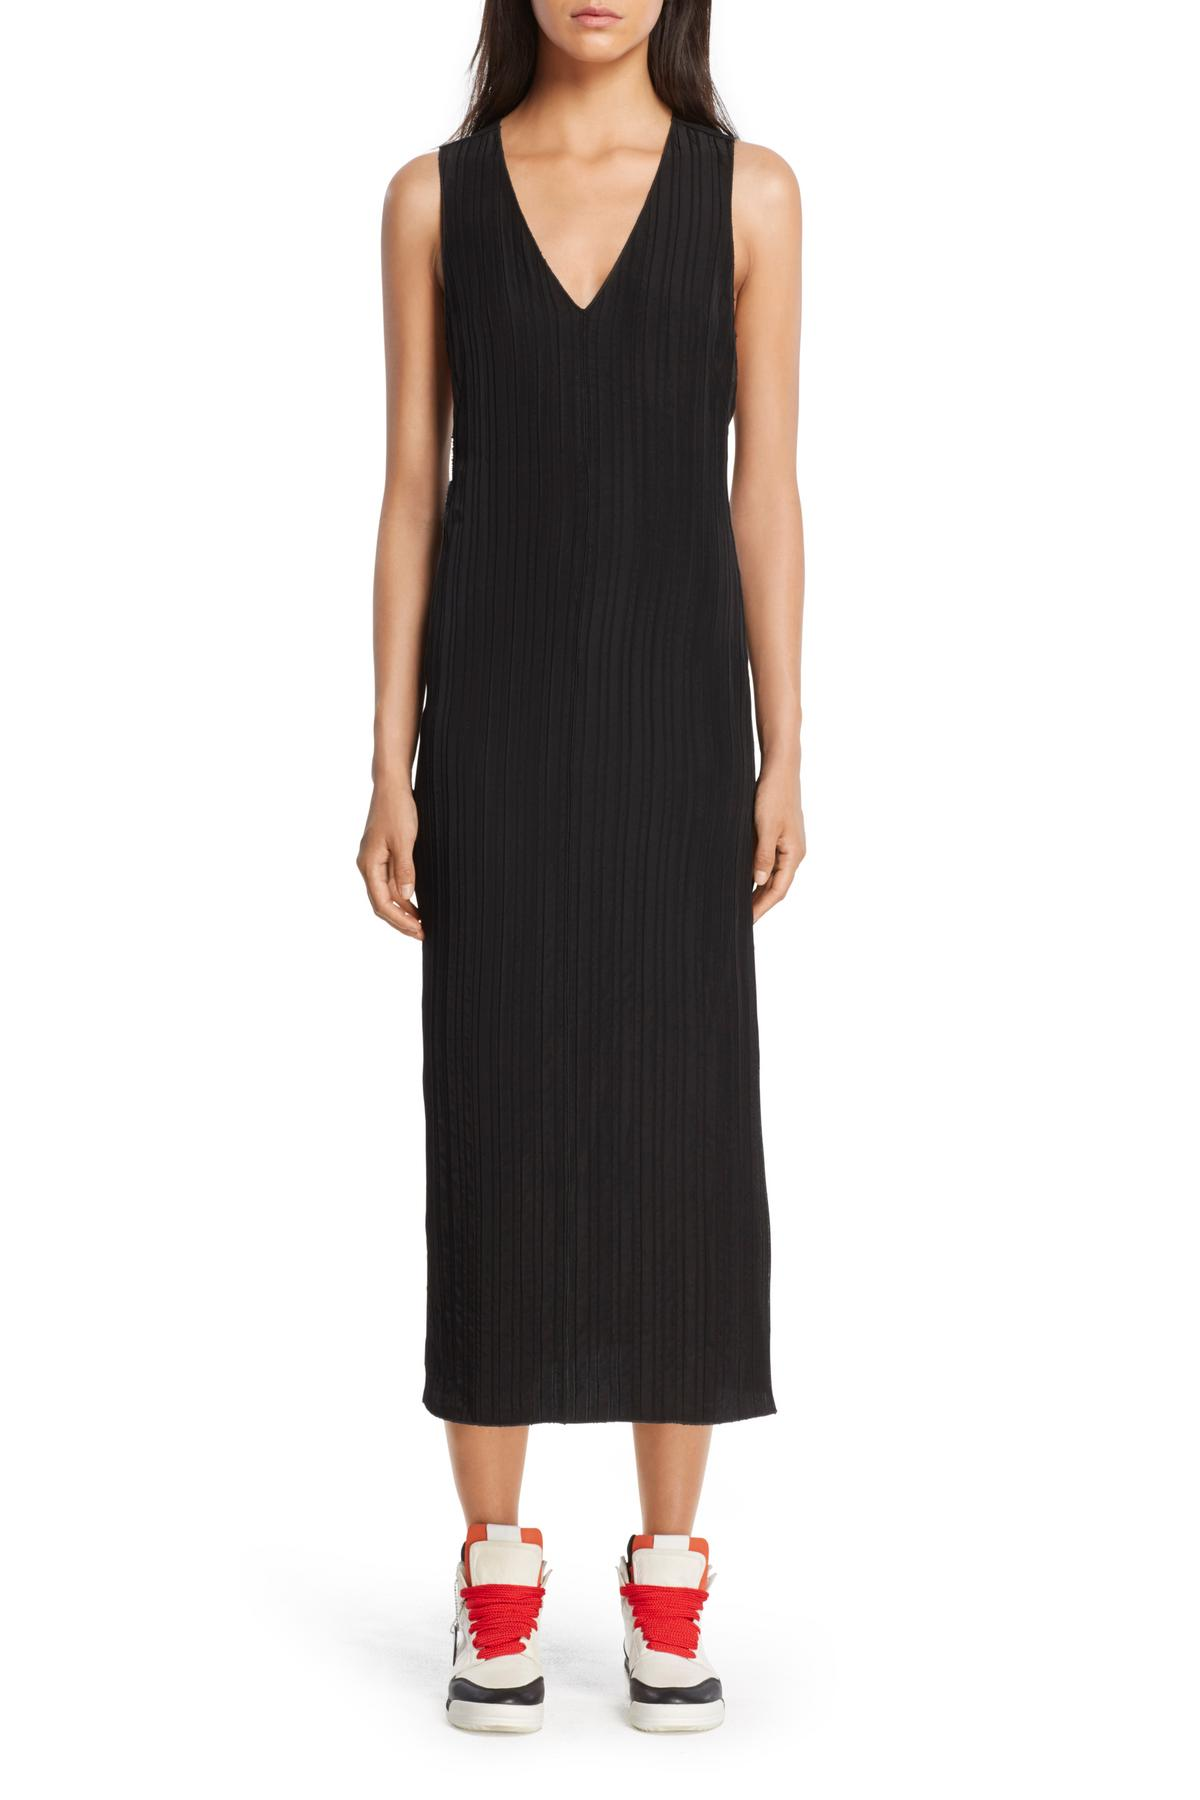 RAG & BONE MARIANA DRESS